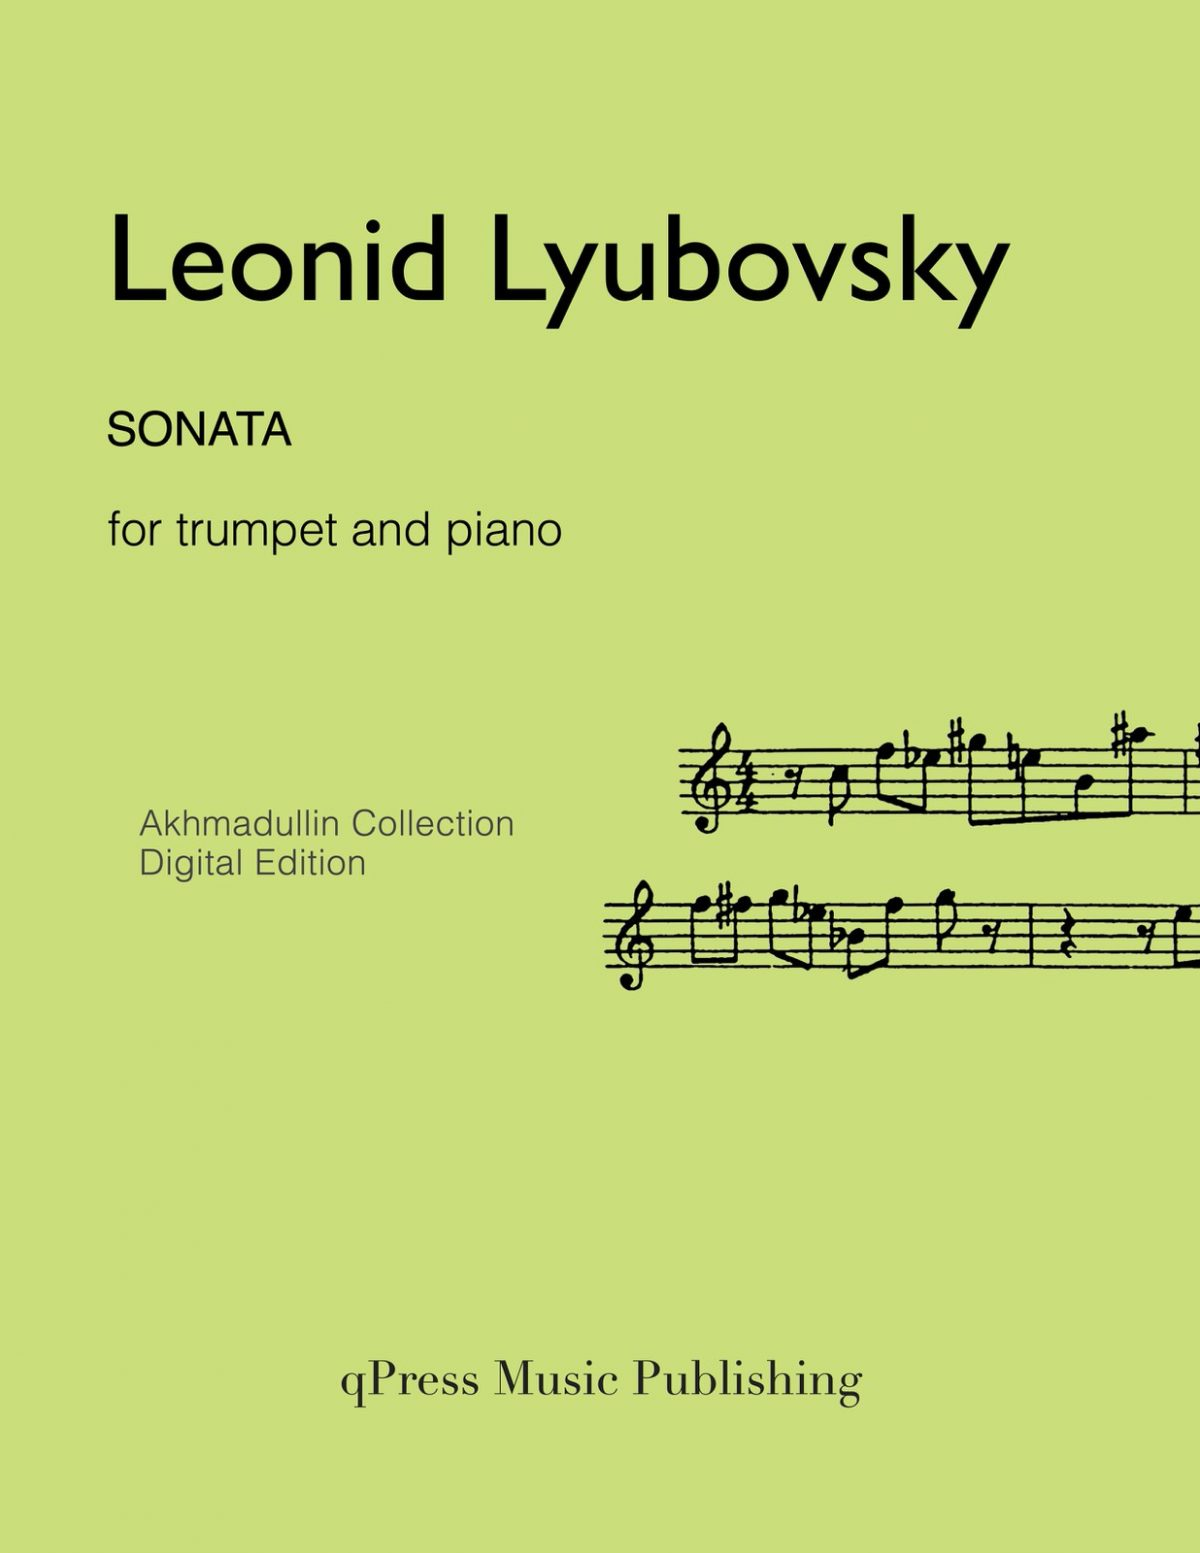 Lyubovsky, Sonata (Score and Part)-p01